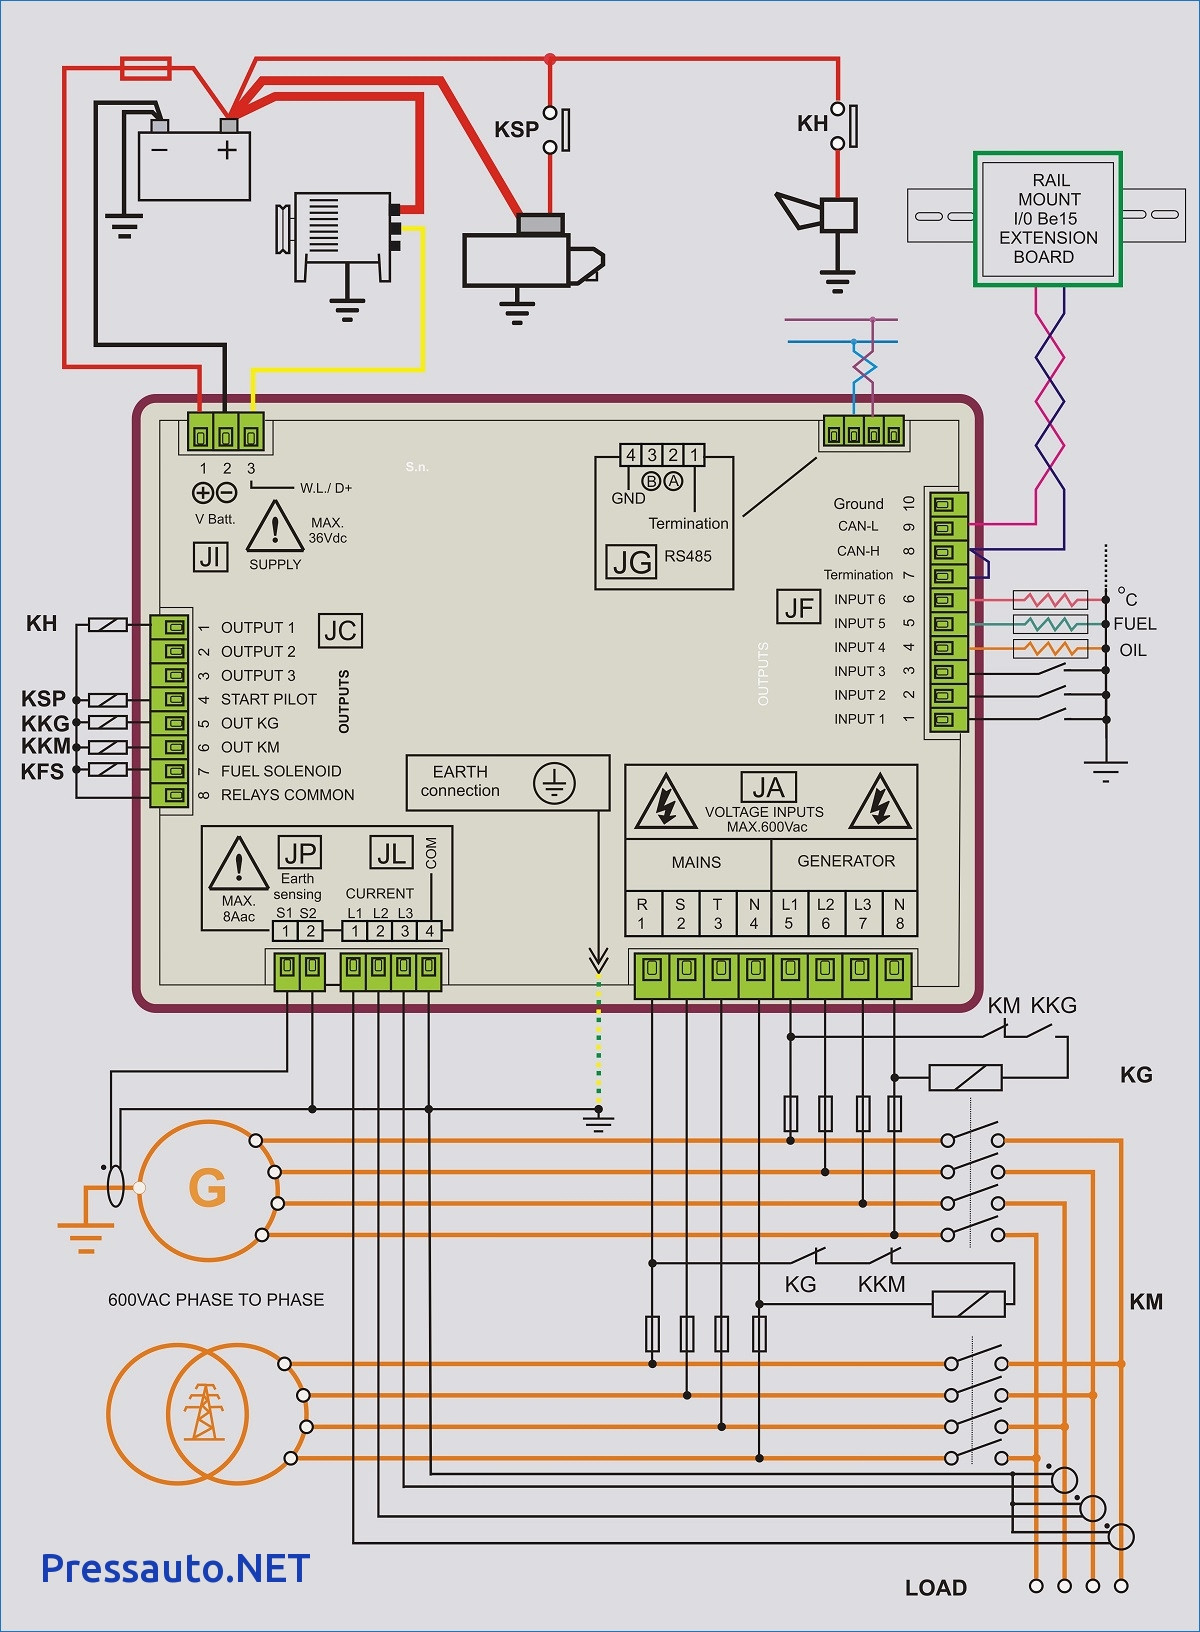 generac 200 amp automatic transfer switch wiring diagram Download-Wiring Diagram Standby Generator New Portable Generator Transfer Switch Wiring Diagram for Manual Generac 18-i